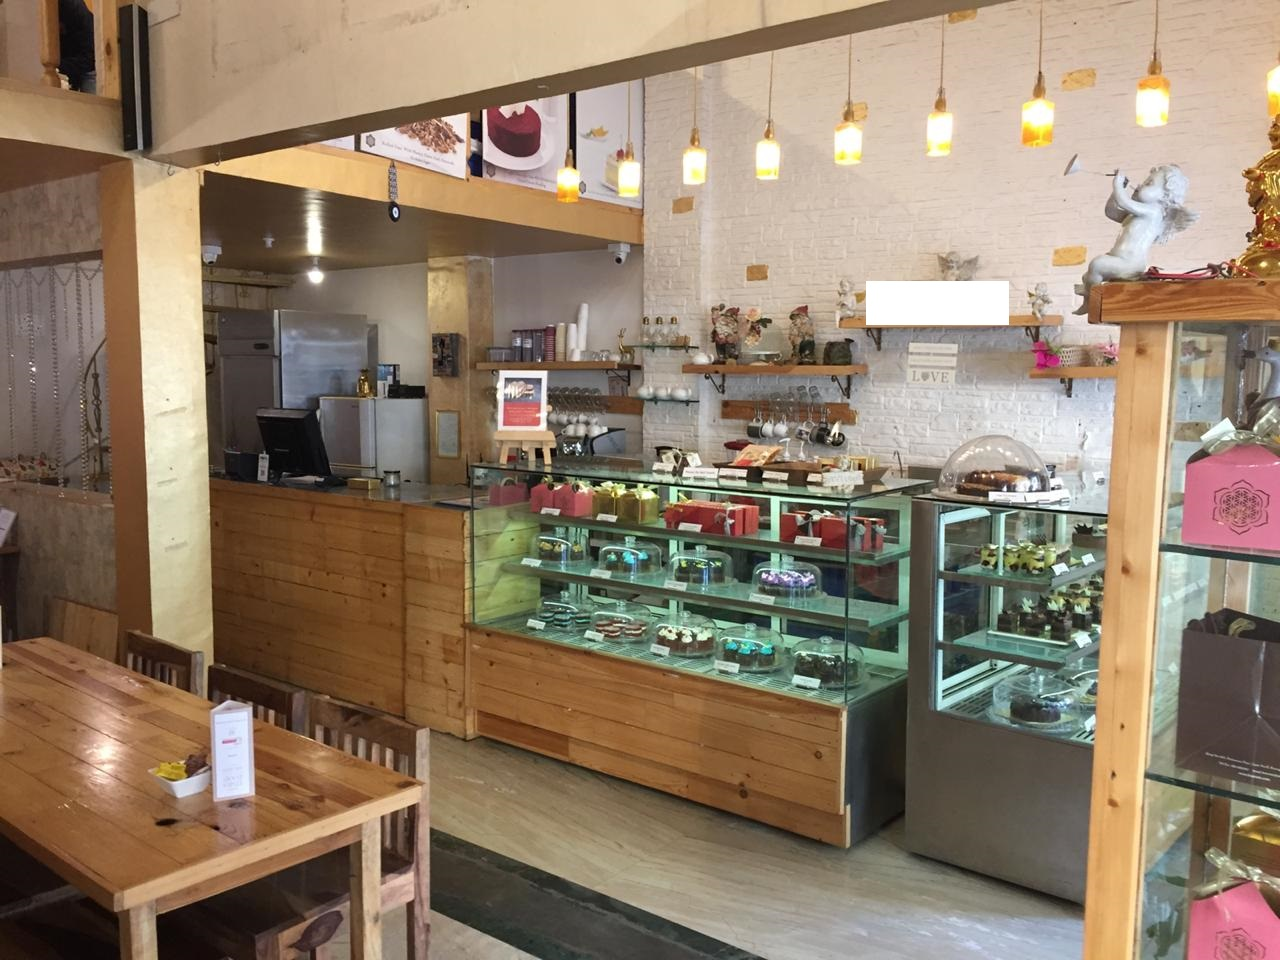 Bakery Related Items Producing a Central Kitchen and a Retail Outlet for Sale in Pune